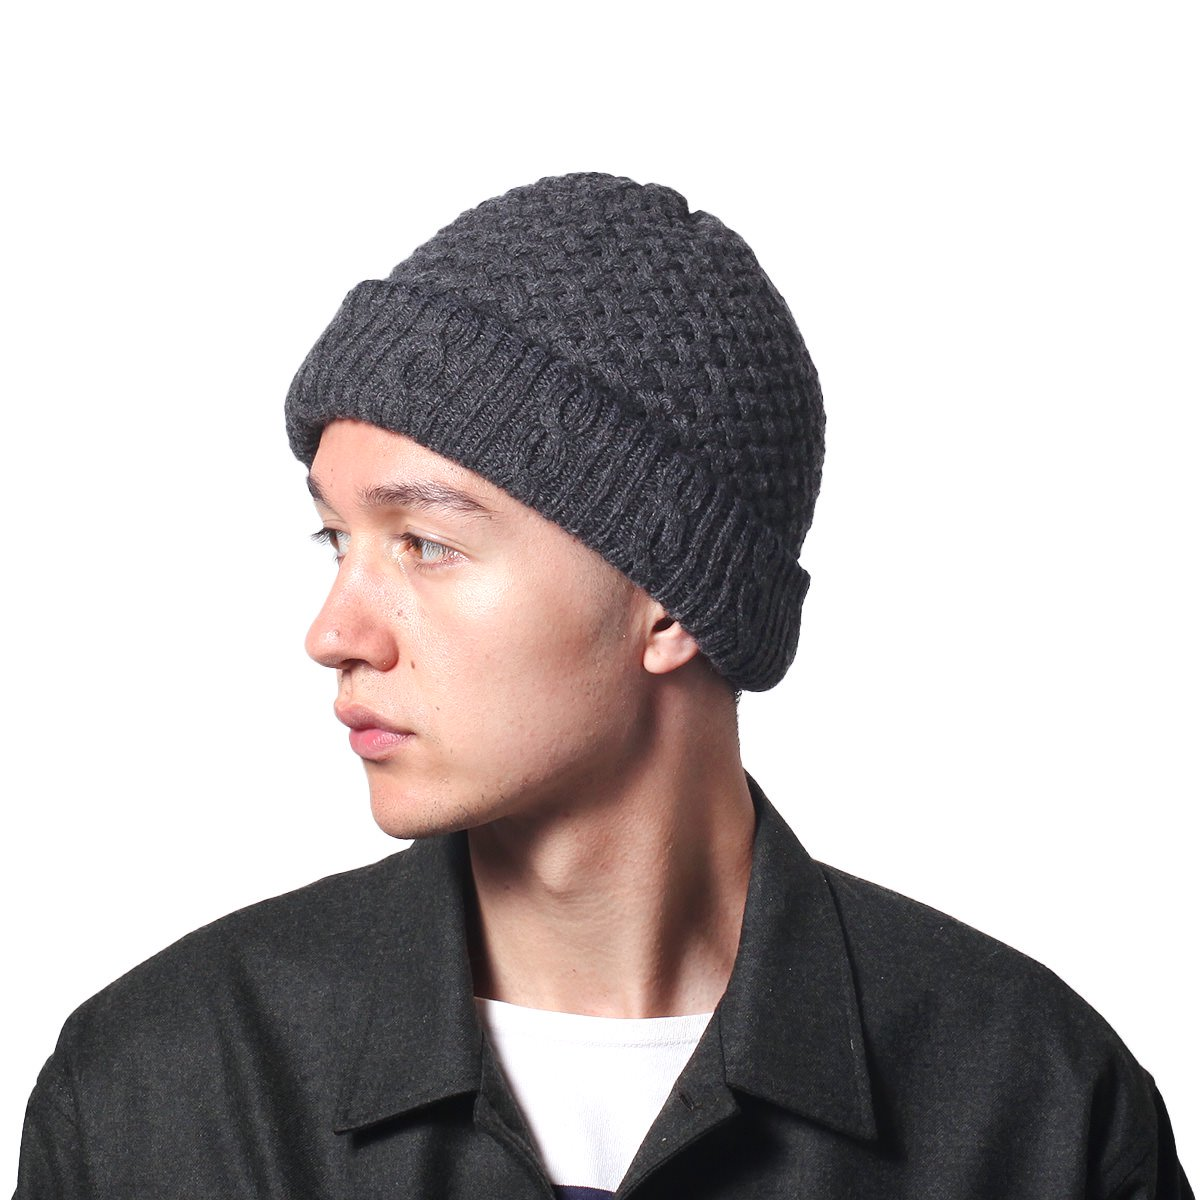 LIGHT-WEIGHT REVERSIBLE KNITCAP TYPE C 詳細画像8